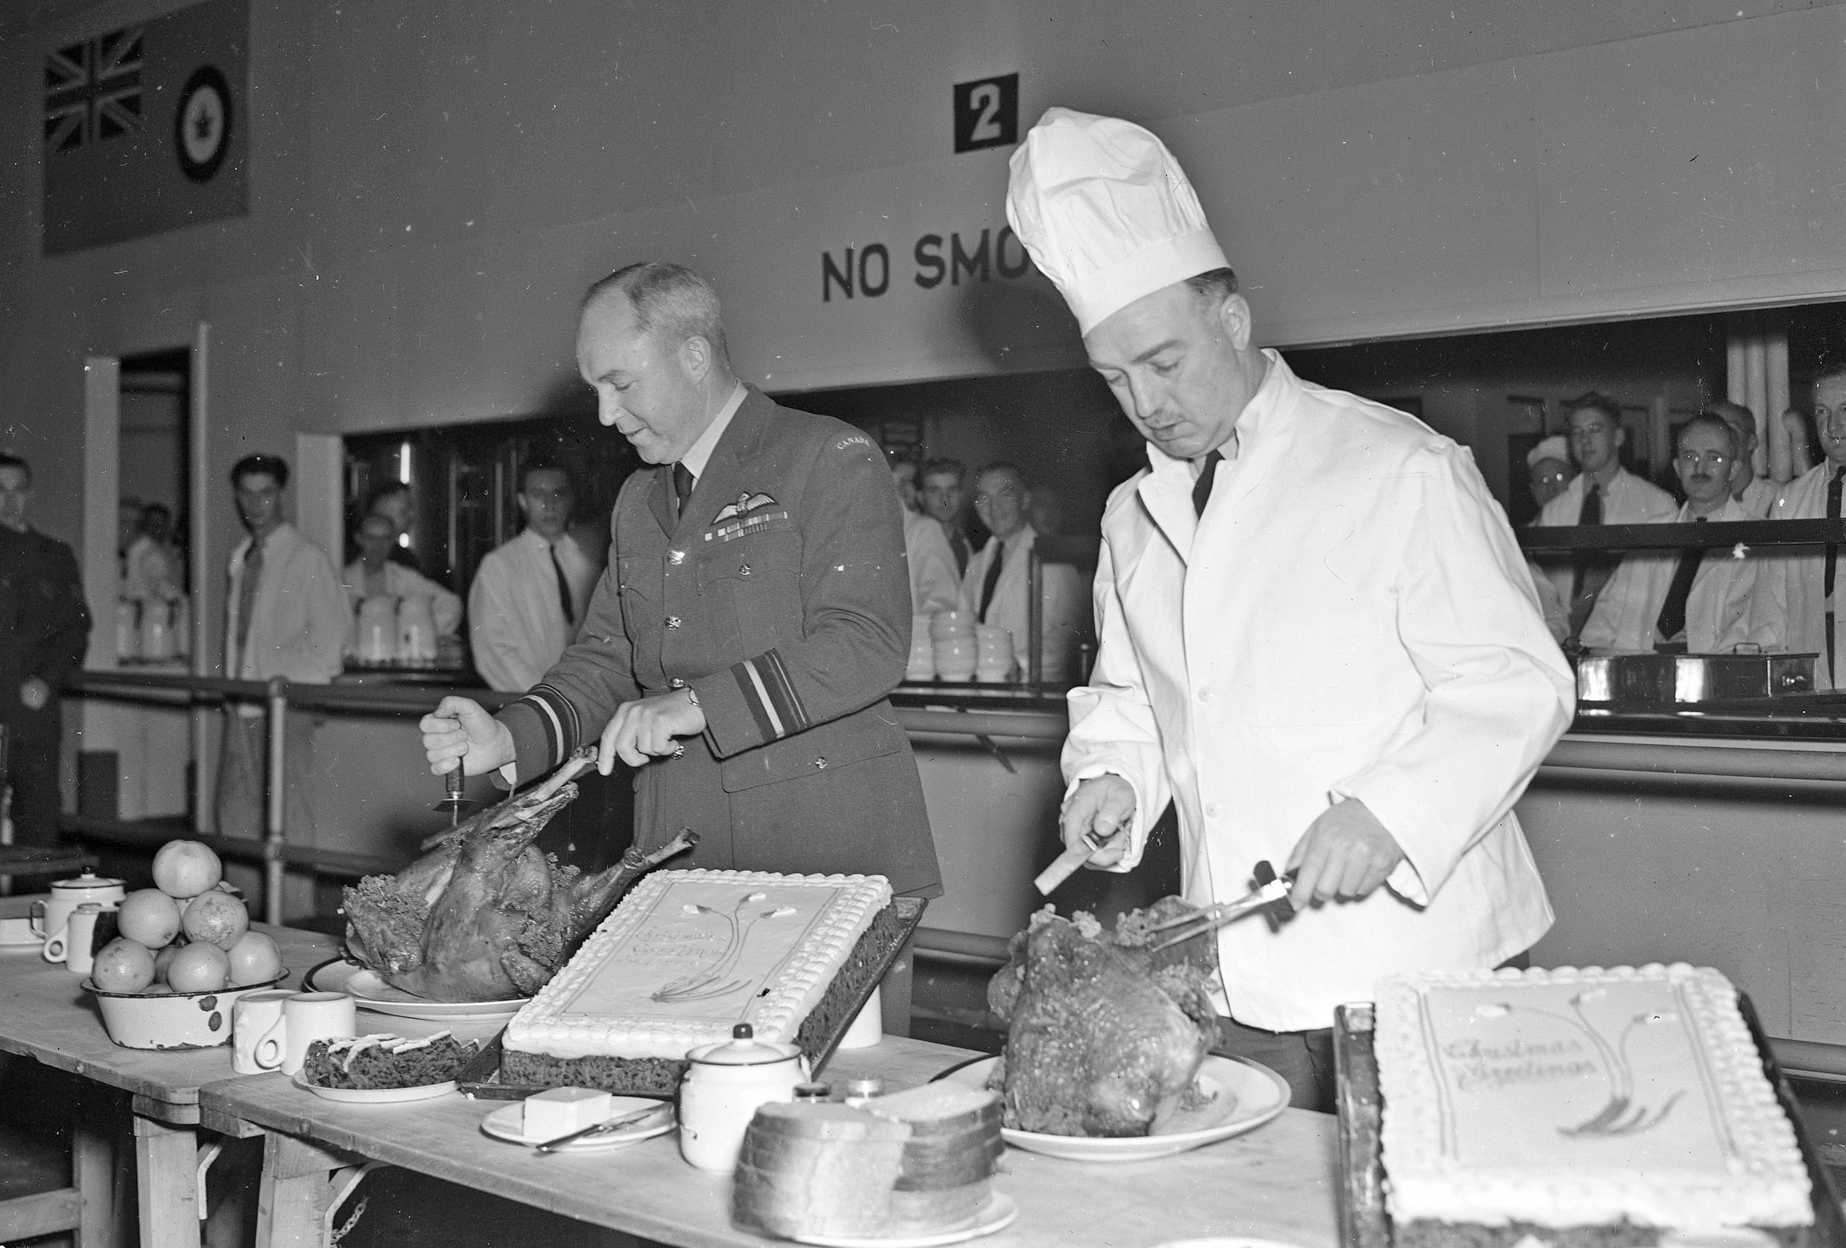 Group Captain H.O. McDonald (right), the commanding officer of the Royal Canadian Air Force's No. 1 Manning Depot in Toronto, Ontario, discarded his air force uniform for a chef's tall white hat and jacket when airmen at the station were served an early Christmas dinner. The Yuletide meal, complete with all the trimmings, was served by the officers and non-commissioned officers of the Manning Depot. Air Vice-Marshal G.O. Johnson (left), the air officer commanding No. 1 Training Command, RCAF, joined Group Captain McDonald in serving two of the hundreds of turkeys that disappeared during the meal held on December 22, 1942. PHOTO: DND Archives